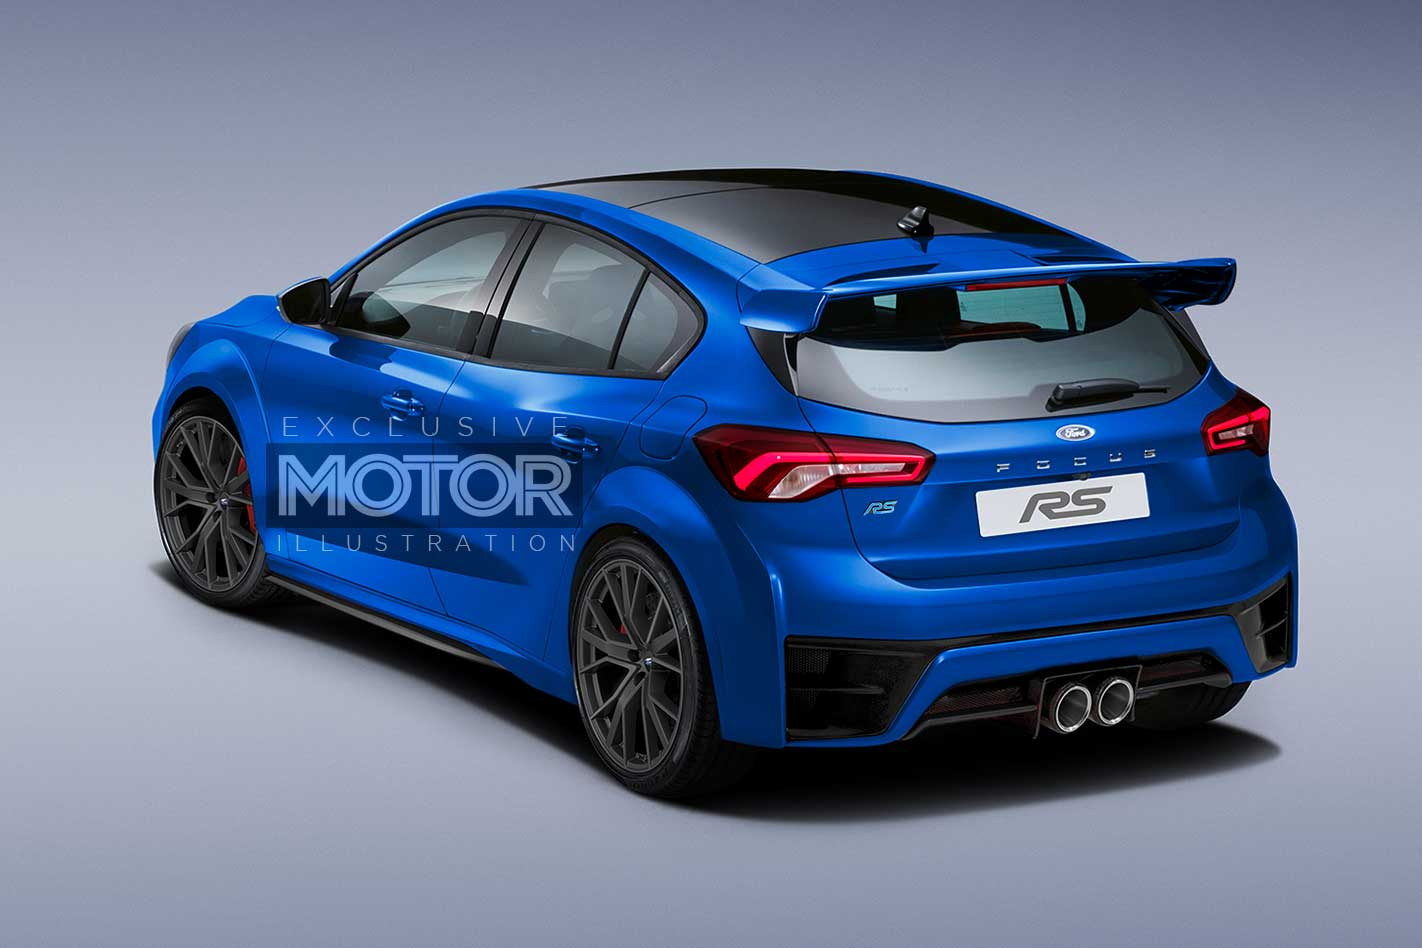 65 The Best 2020 Ford Focus Rs St Exterior